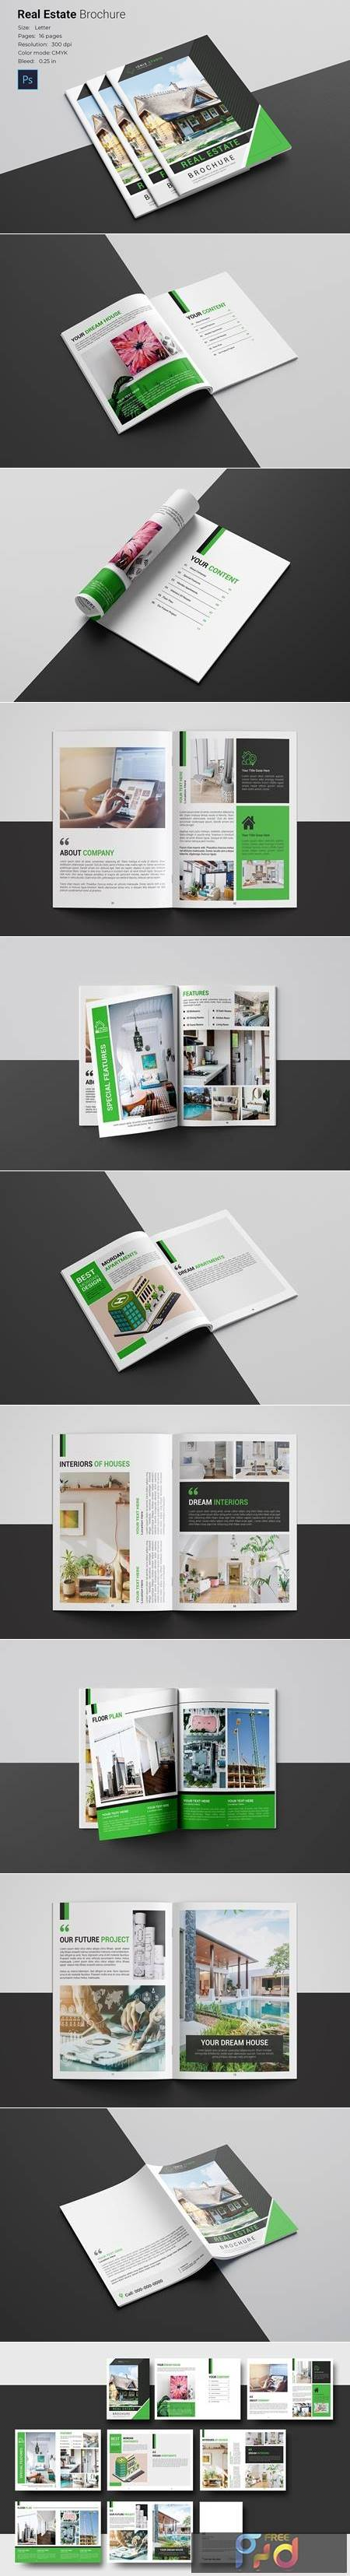 Real Estate Brochure Template 4970504 1